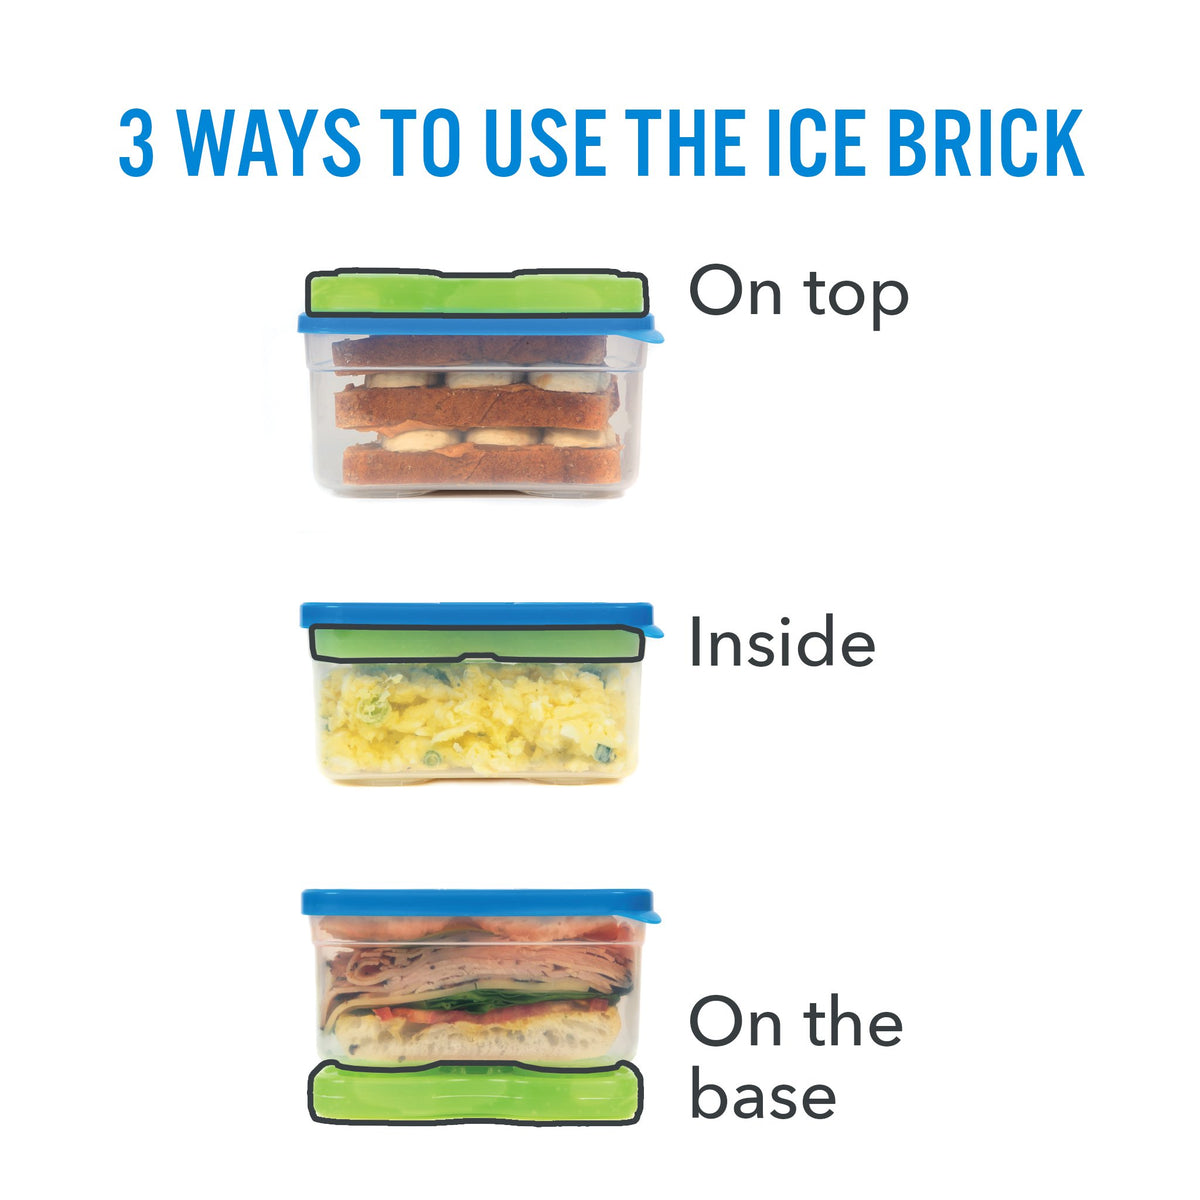 Interlockers 8 Piece Sandwich Set - 3 ways to use the ice brick: on top, inside, on the base.